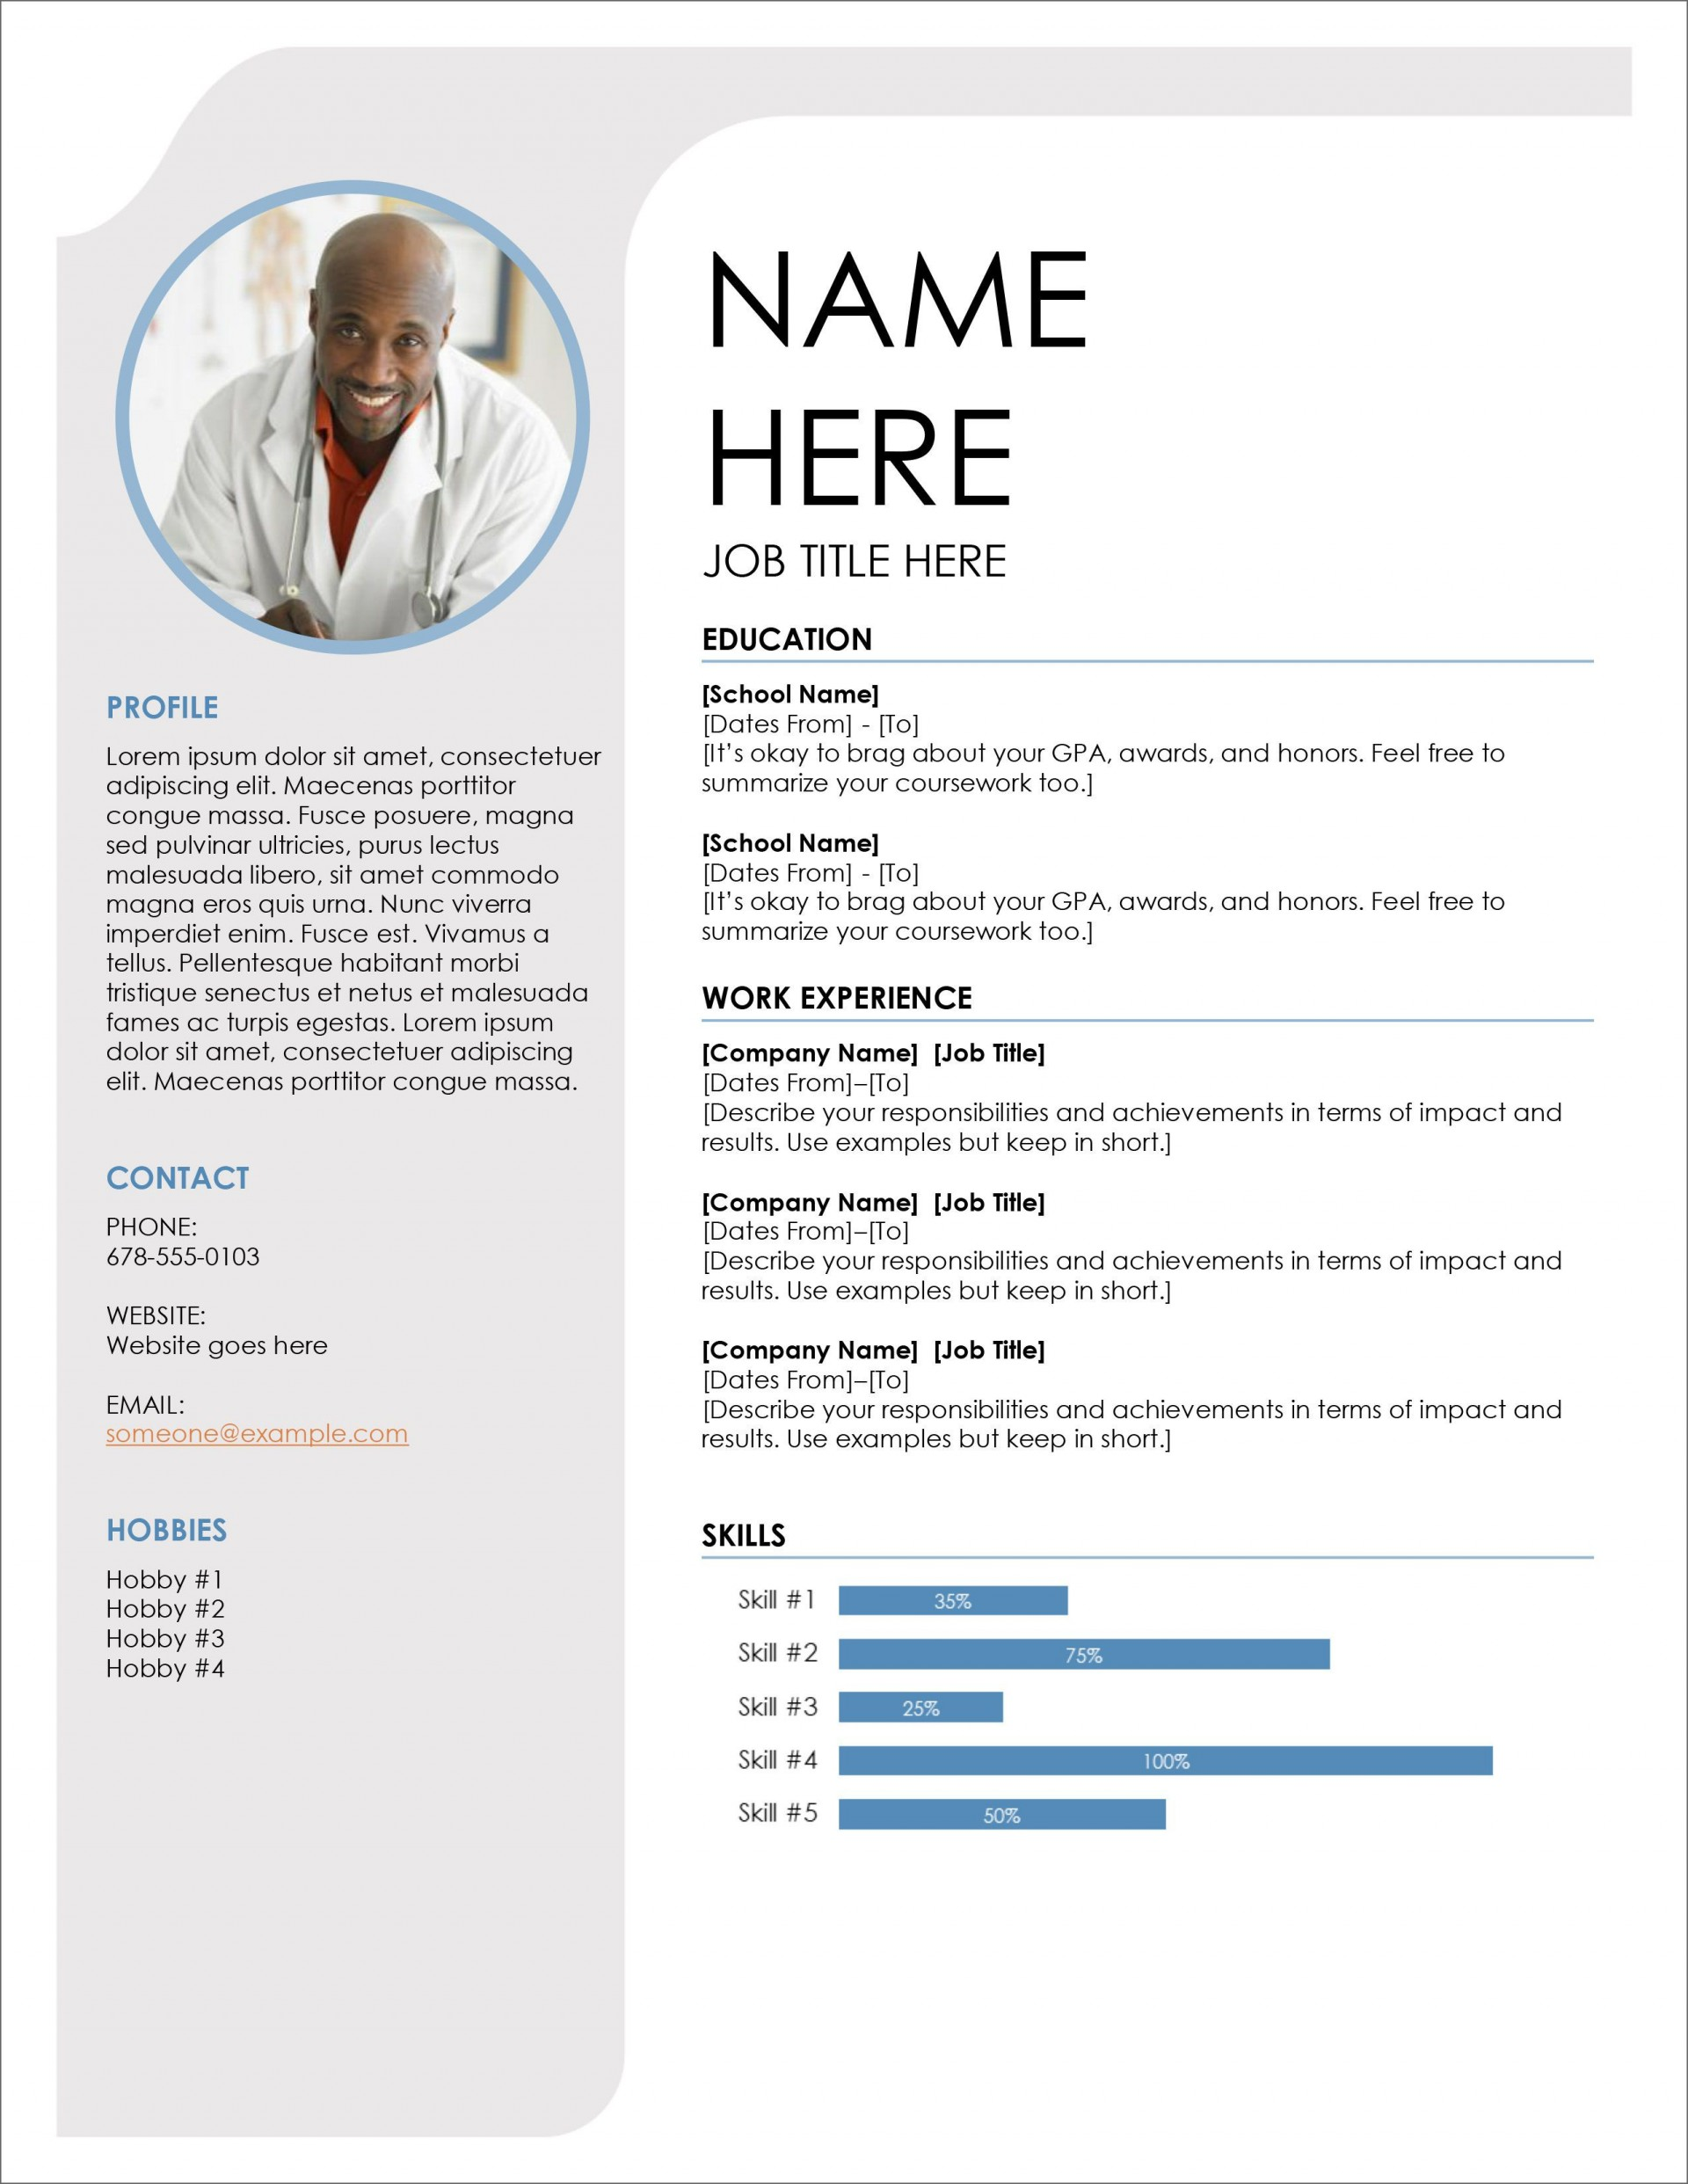 006 Unforgettable Word Cv Template Free Download Highest Quality  2020 Design Document For Student1920